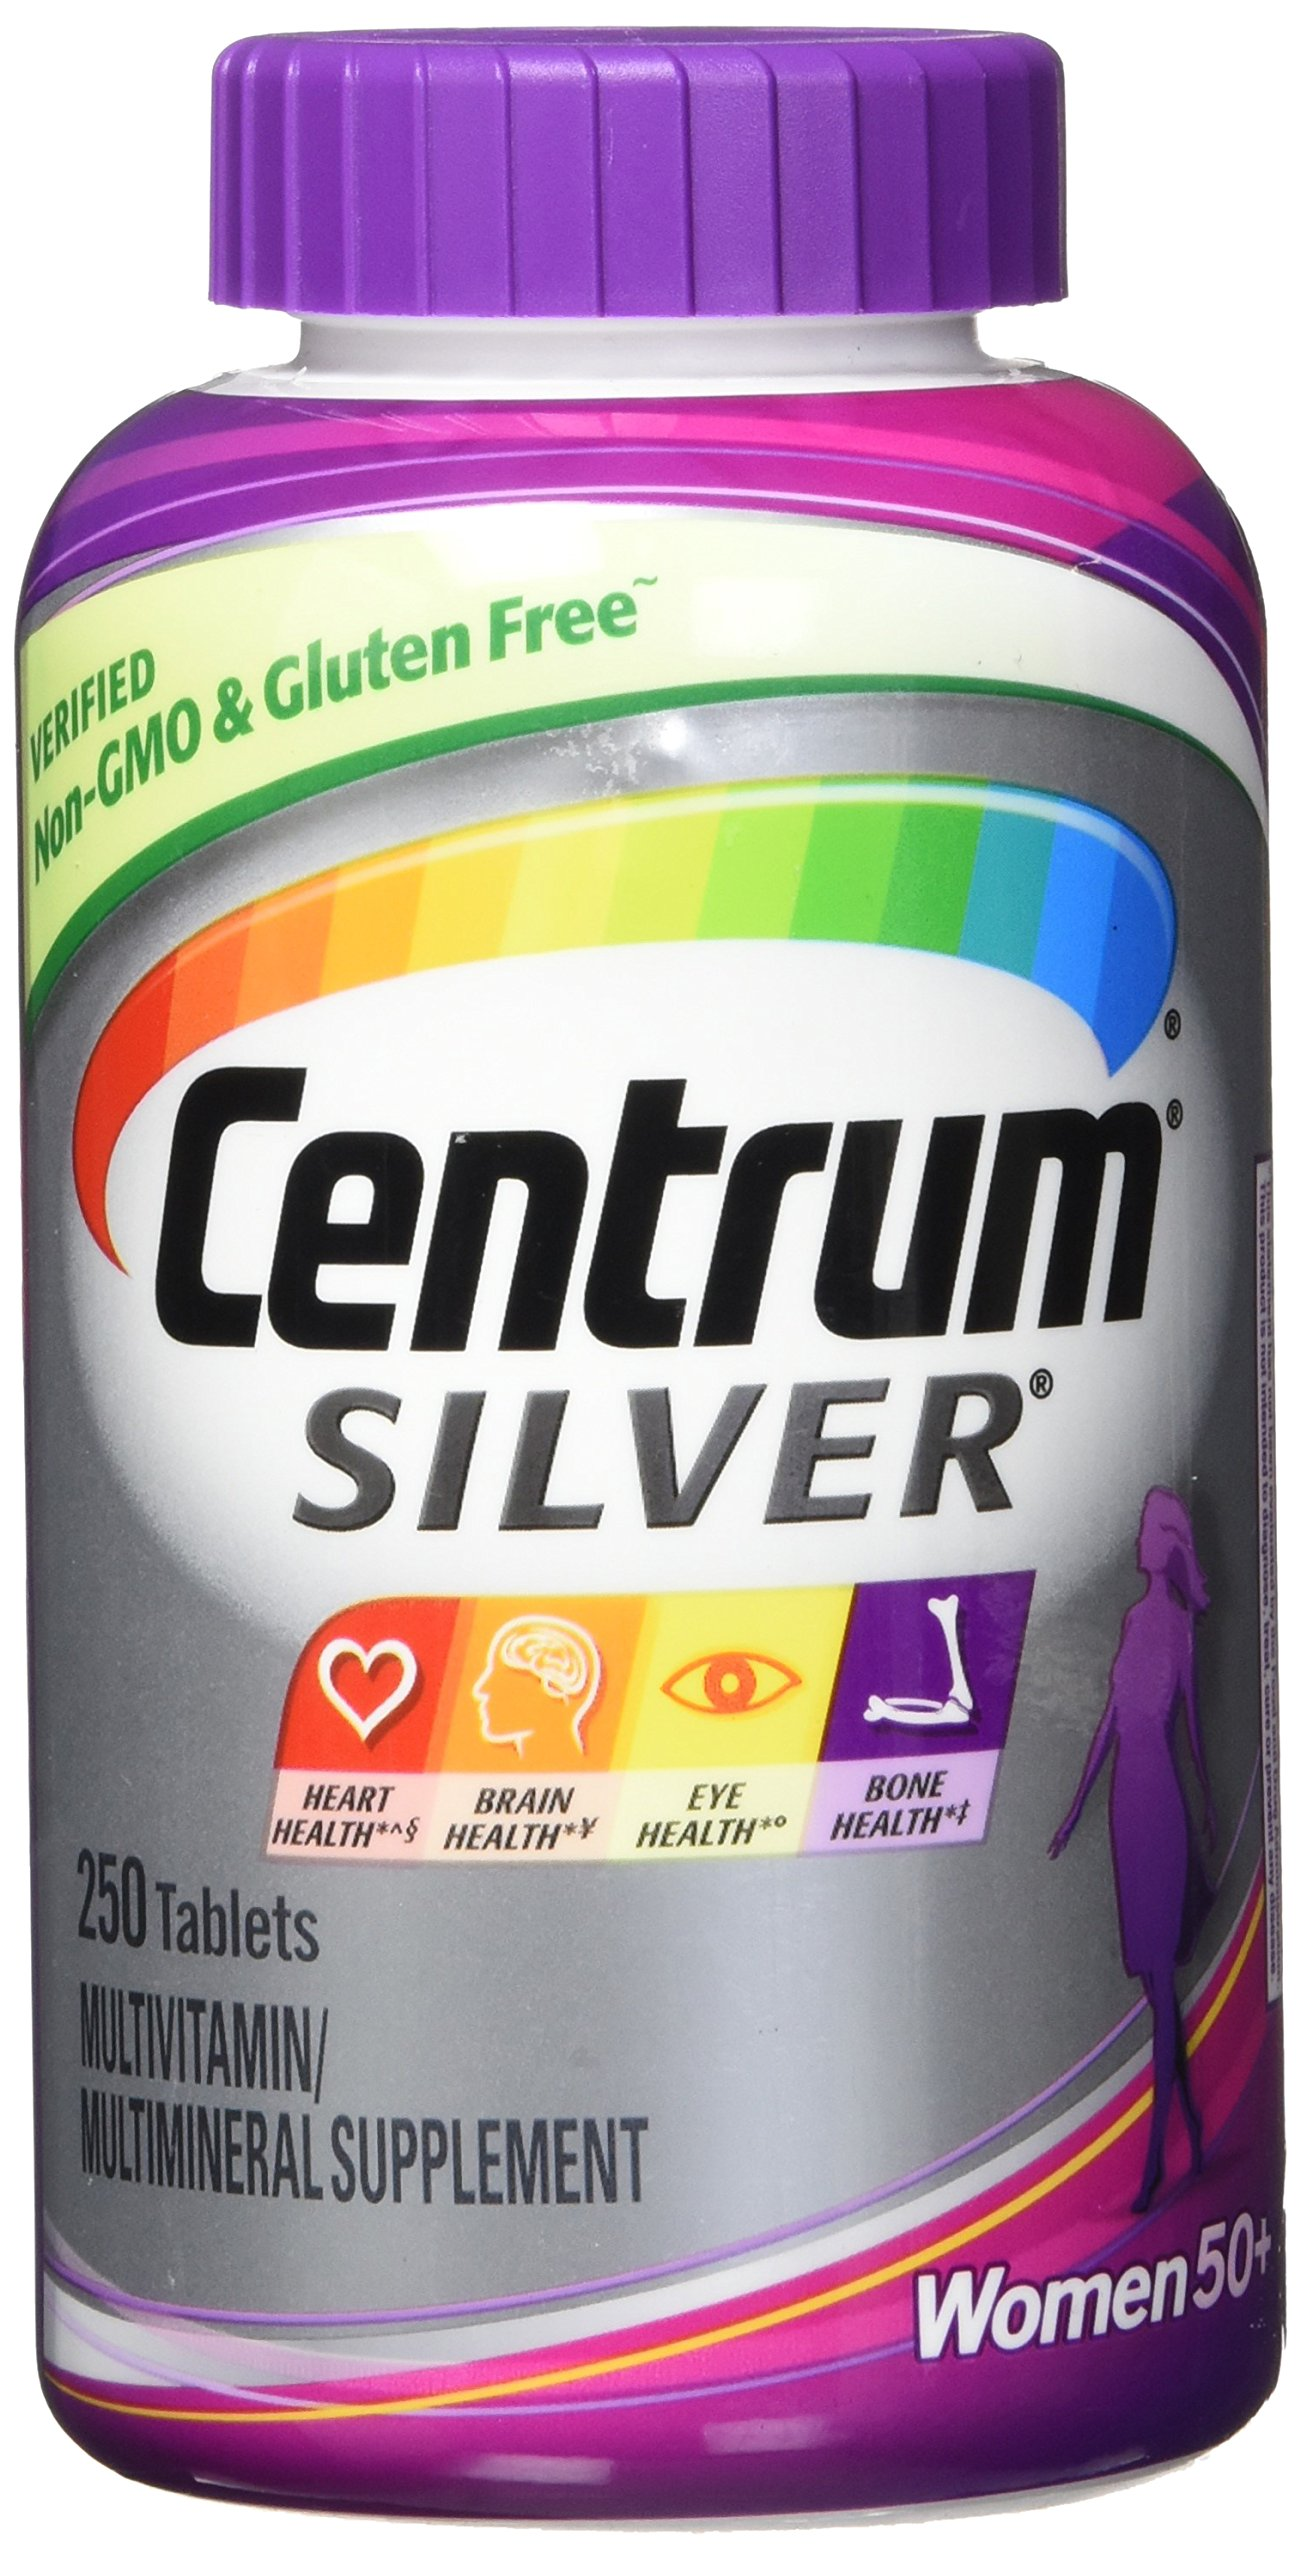 New. Easier to Swallow Centrum Silver Women 50 + 250 Tablets by Centrum